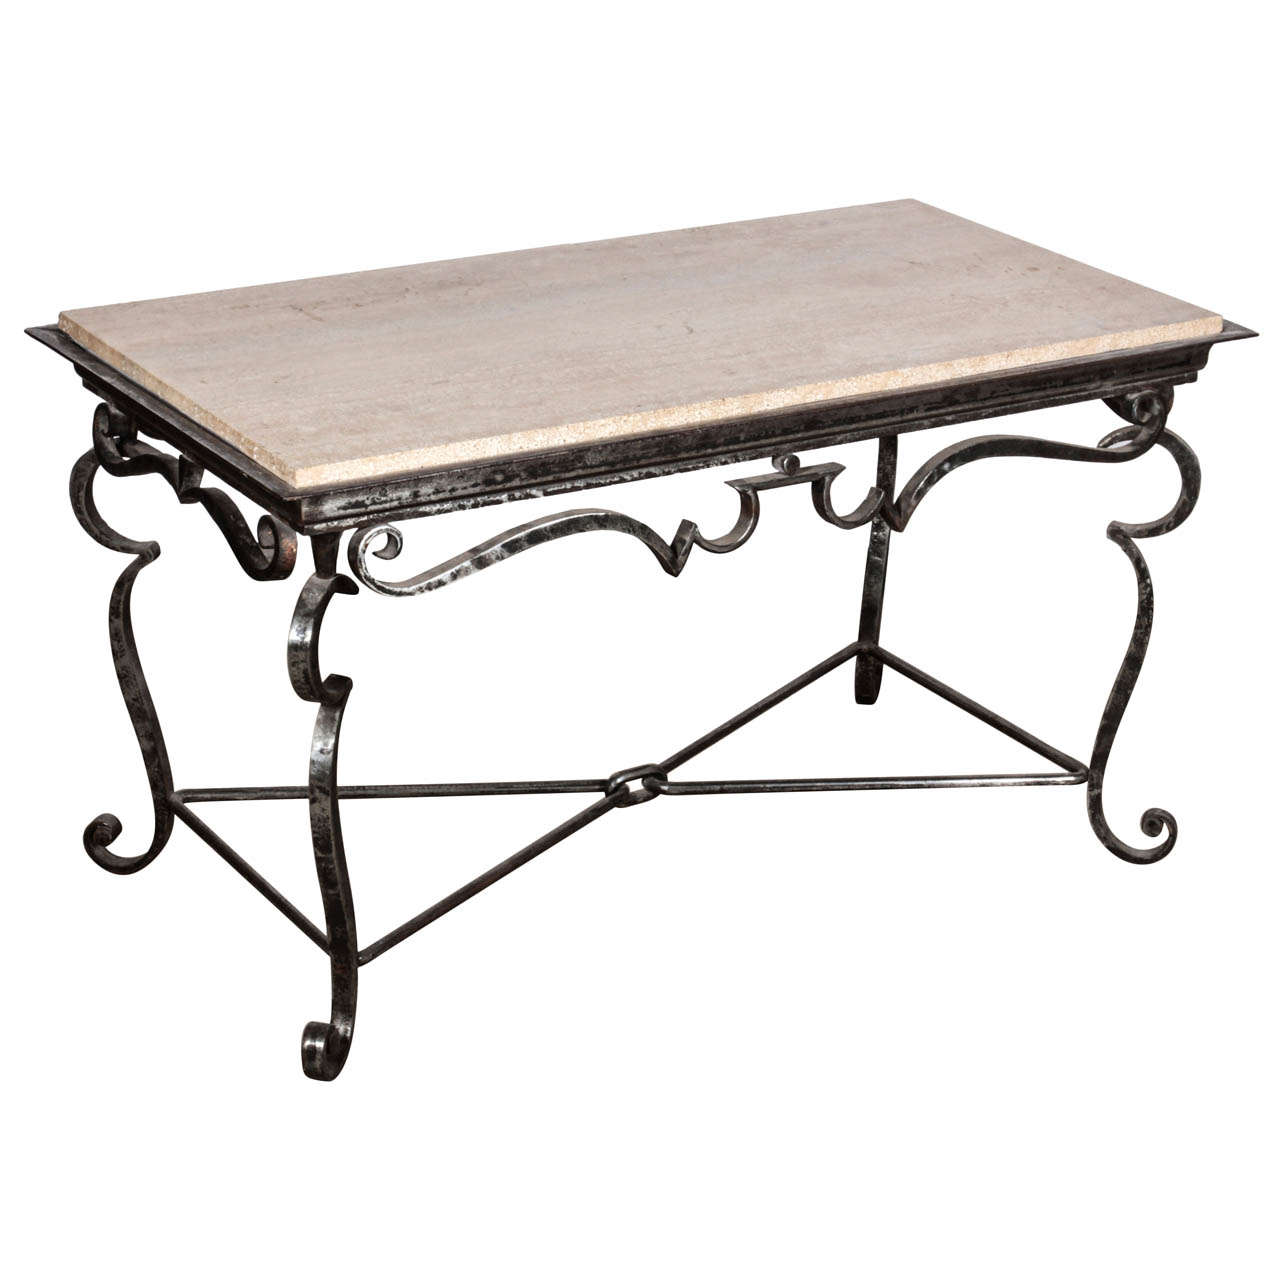 Marble Coffee Table For Sale Singapore: Iron Coffee Table With Travertine Marble Top For Sale At